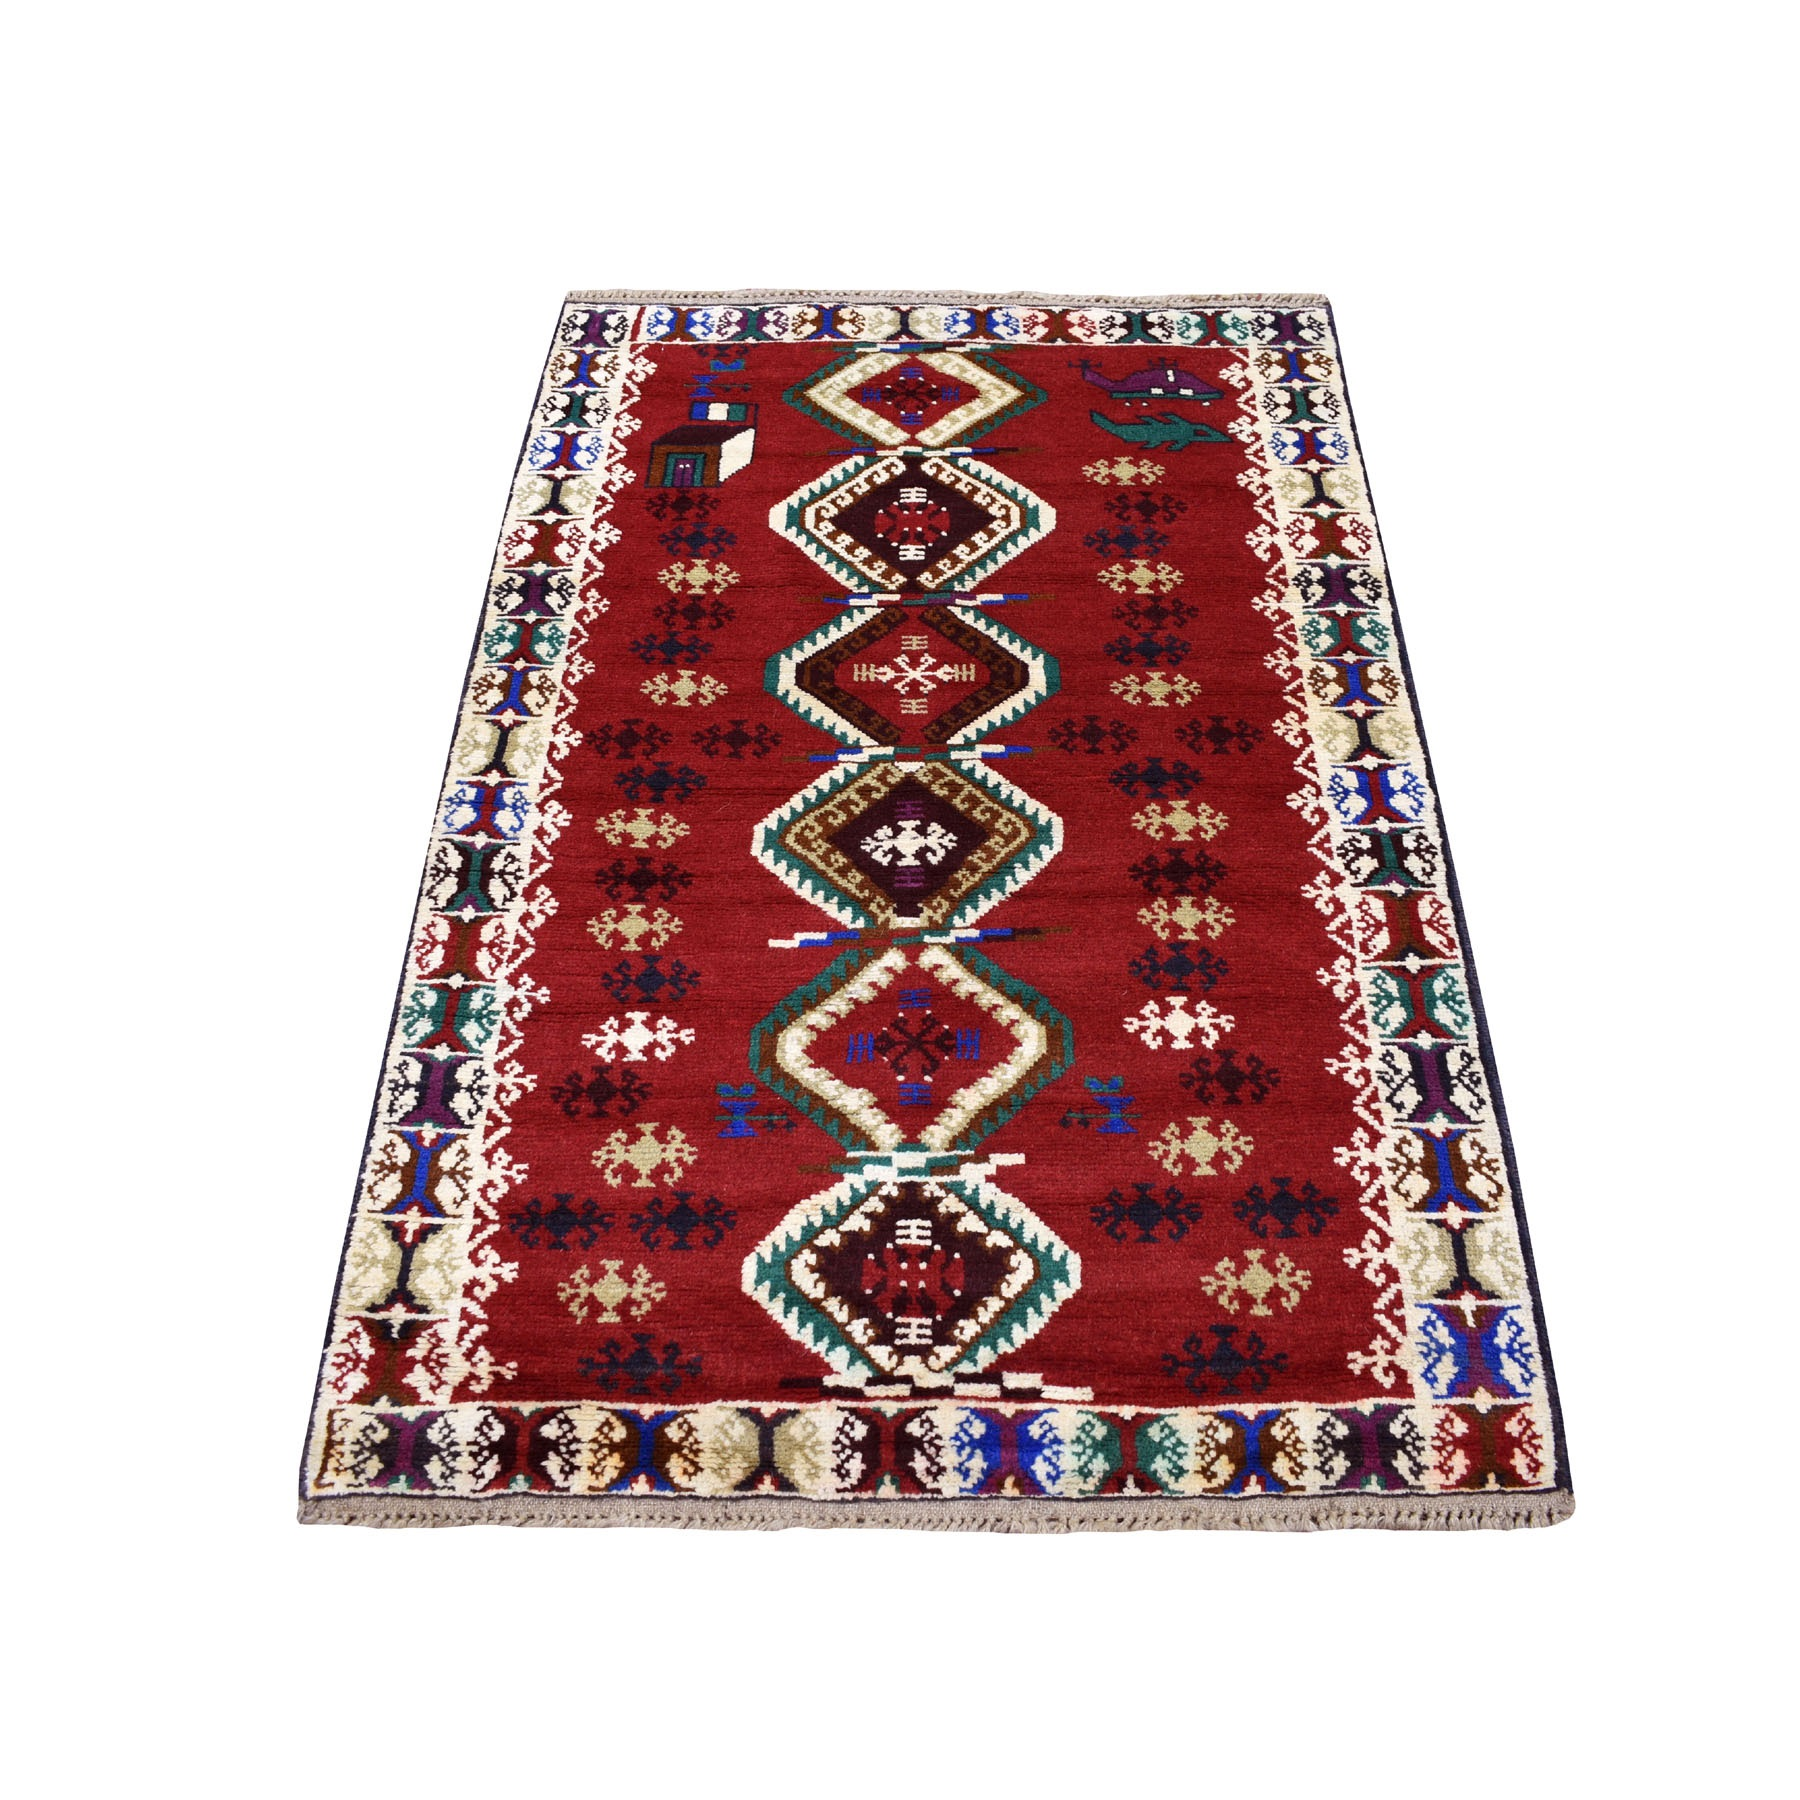 "3'3""X4'9"" Red Colorful Afghan Baluch Geometric Design Hand Knotted Pure Wool Oriental Rug moaecb90"